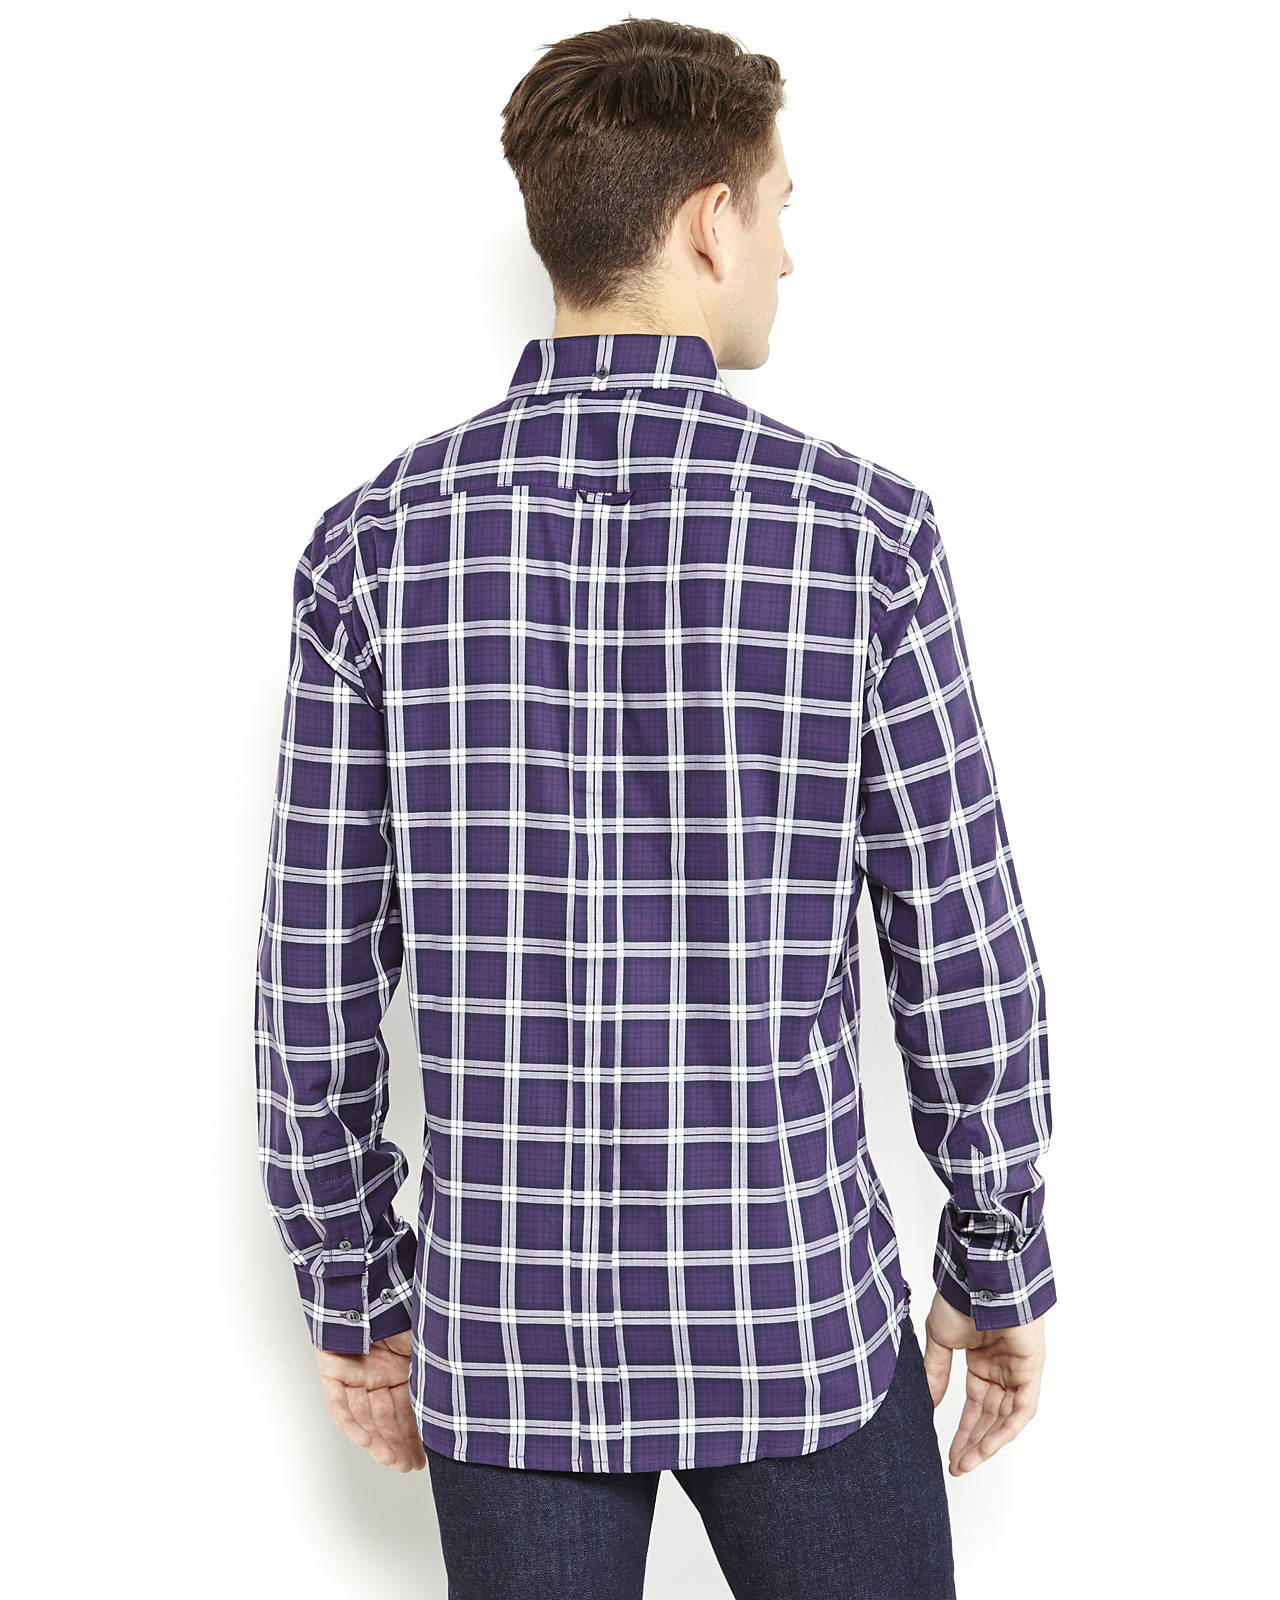 Purple Plaid Button Down Shirt Shirts Rock